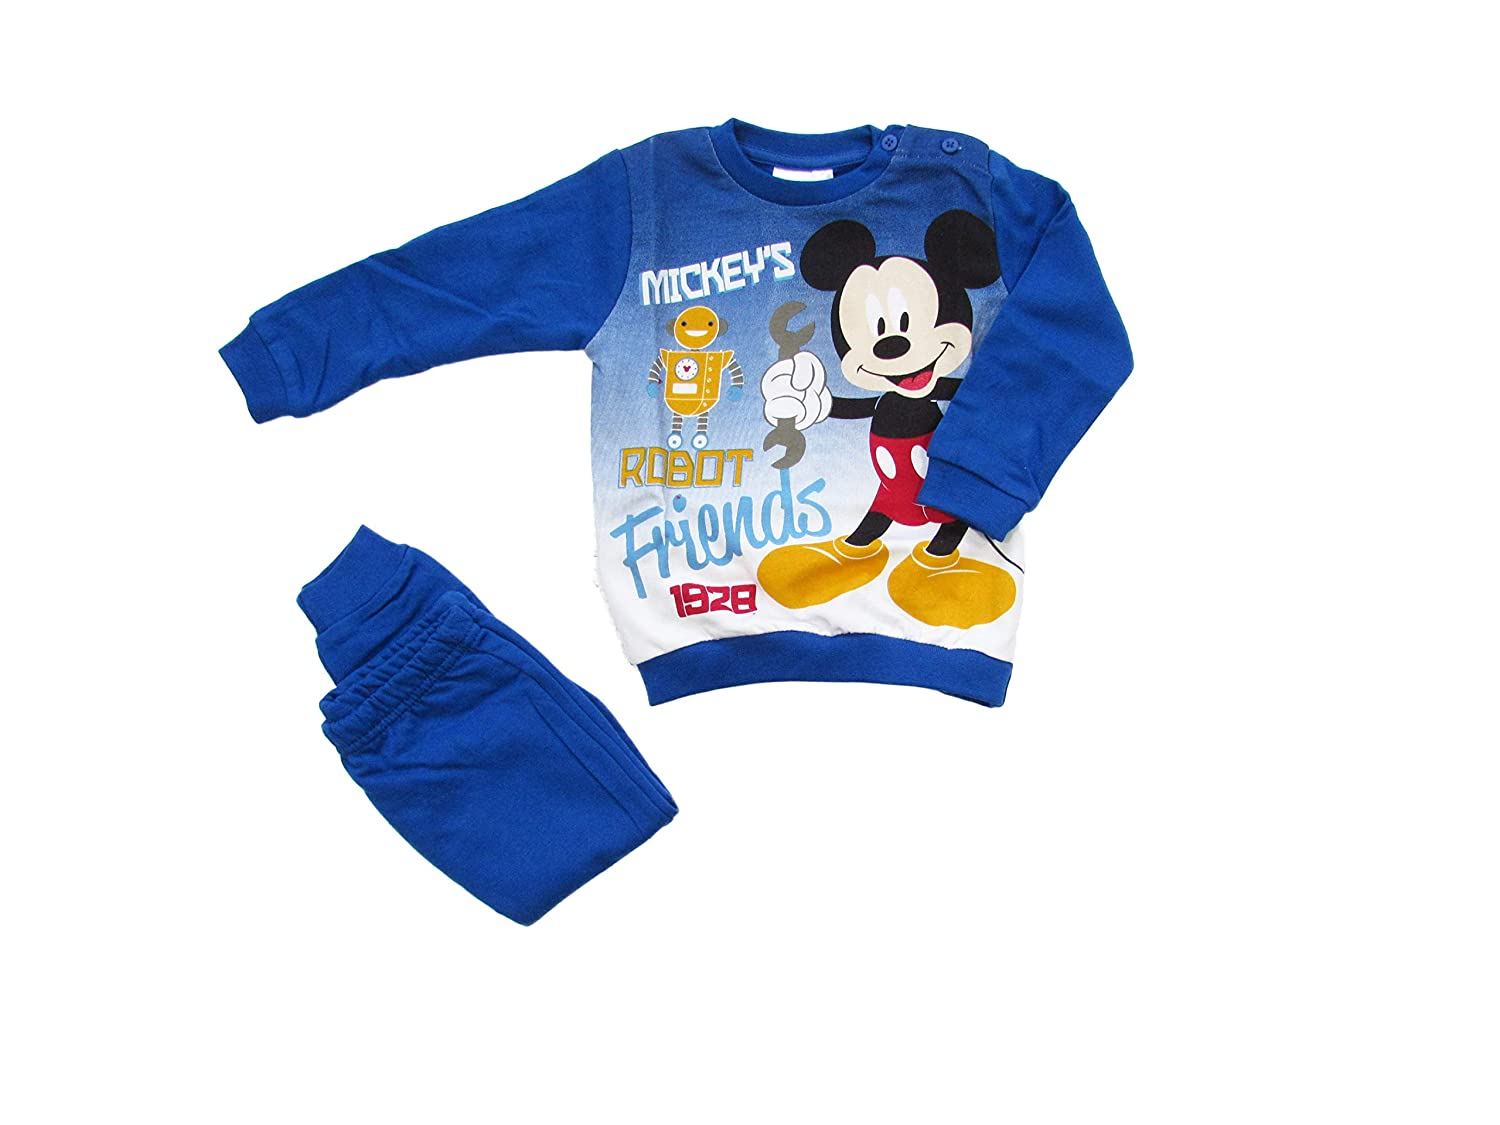 ARNETTA Disney Baby Pigiama Neonato Topolino Invernale, Felpato all'Interno - Art. 45729 Felpato all' Interno - Art. 45729